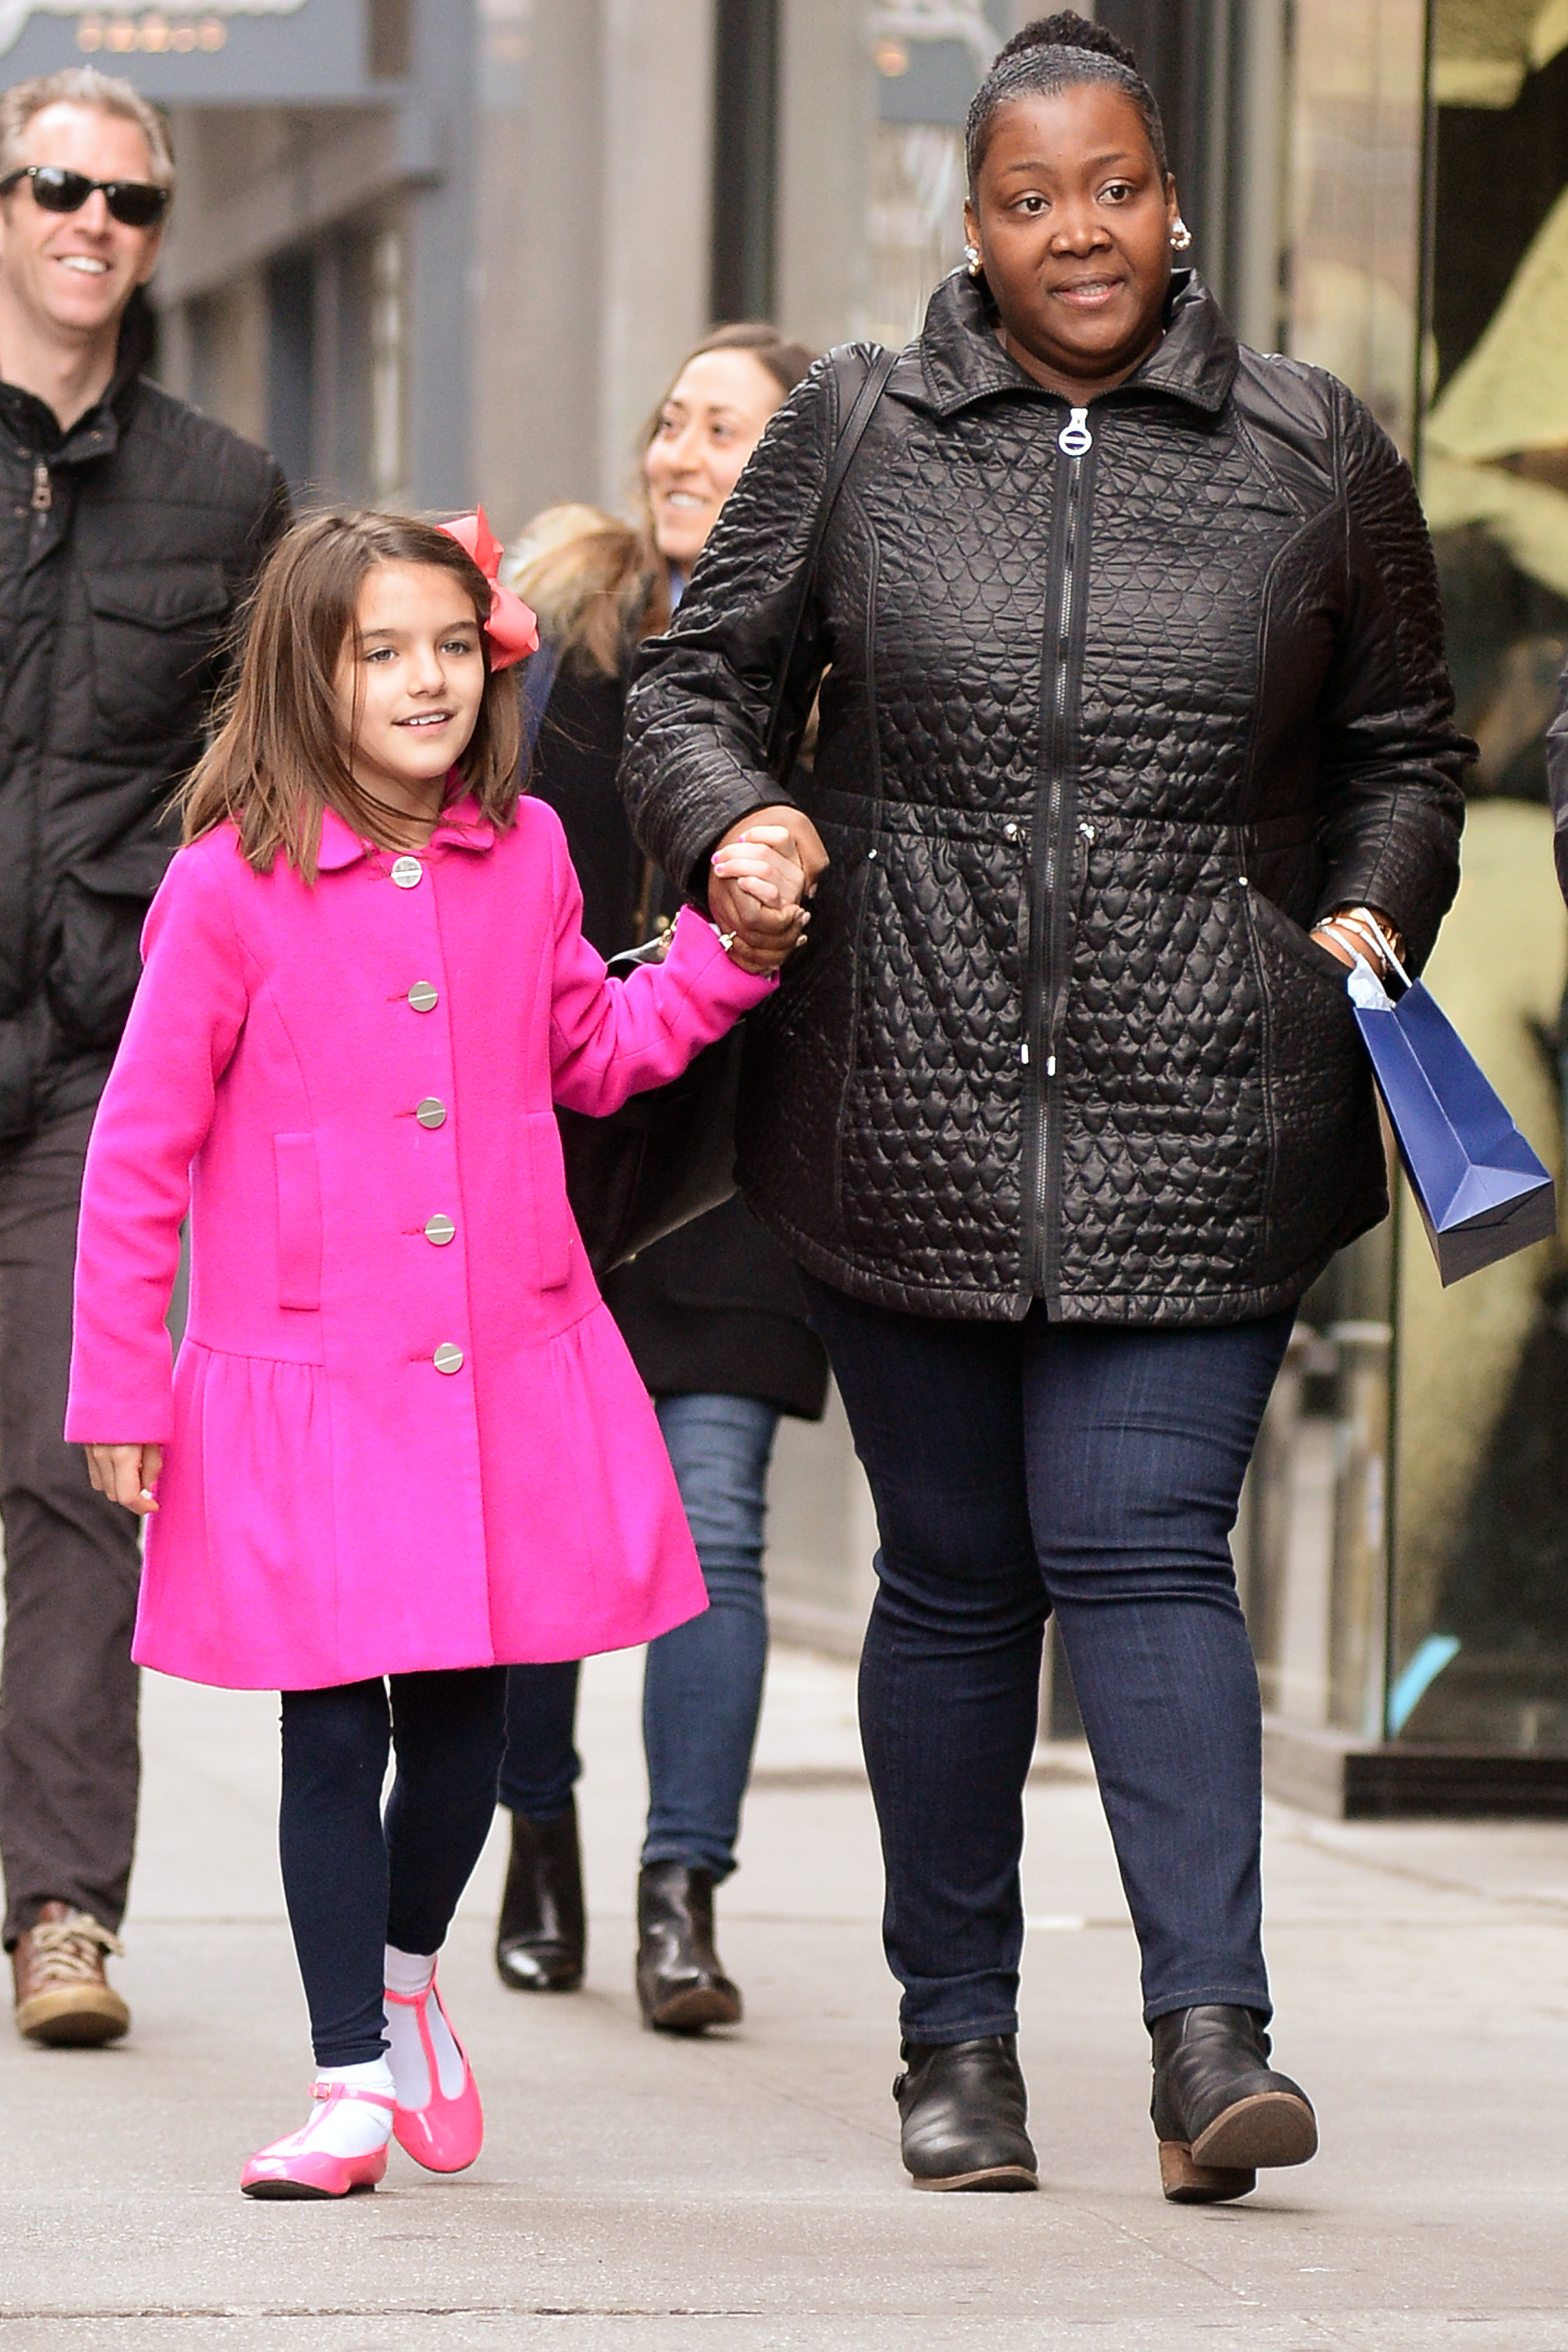 EXCLUSIVE Suri Cruise Looks Pretty in A Pink Coat While Shopping